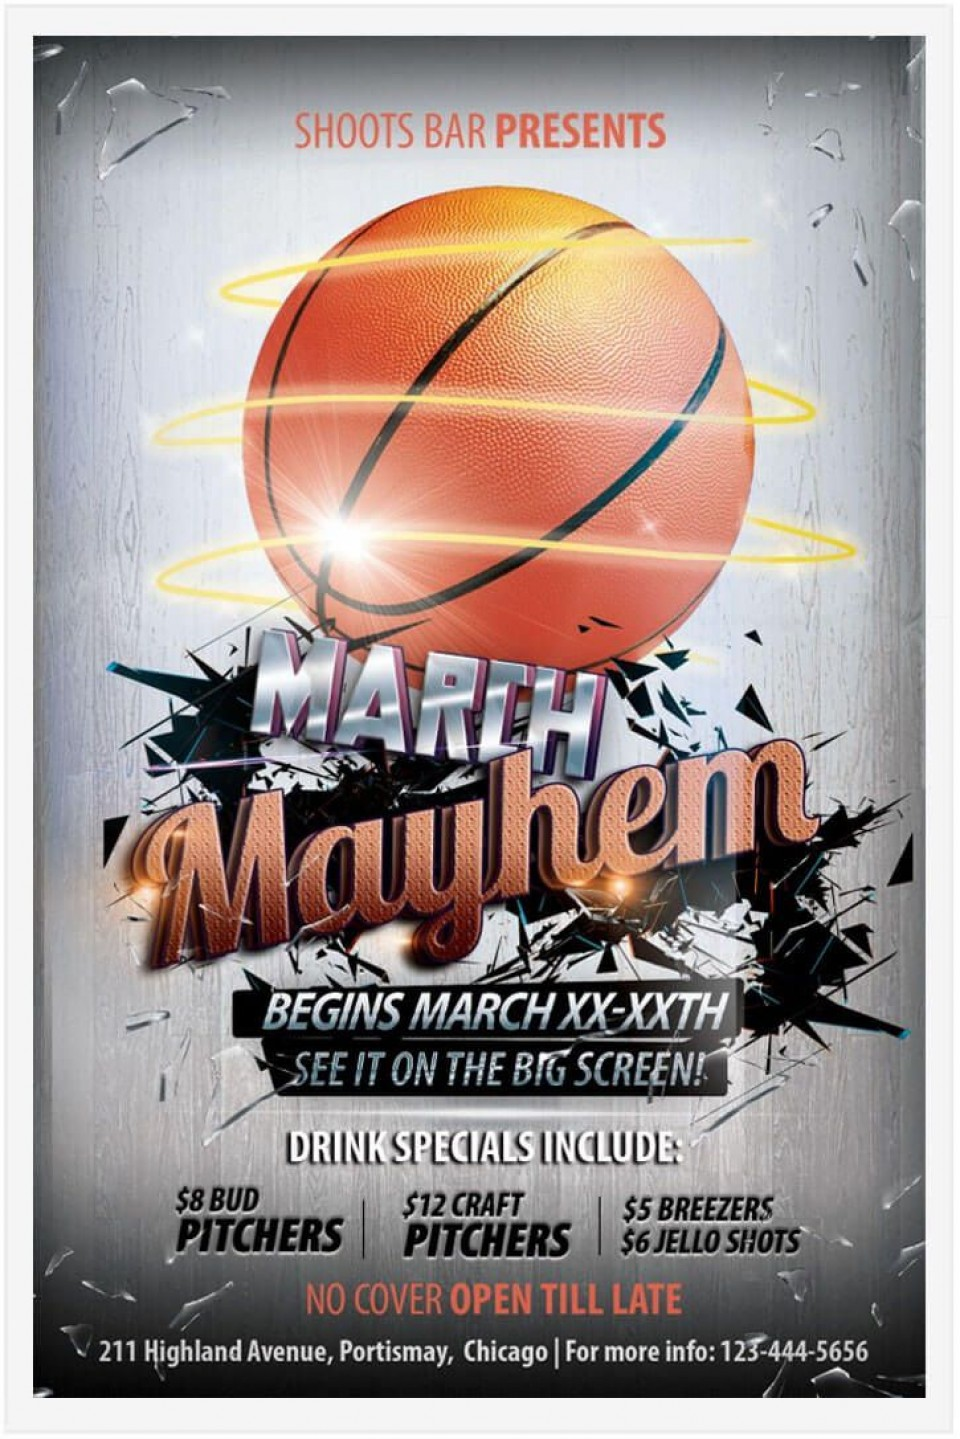 009 Breathtaking Free Basketball Flyer Template High Resolution  Game 3 On Tournament Word960